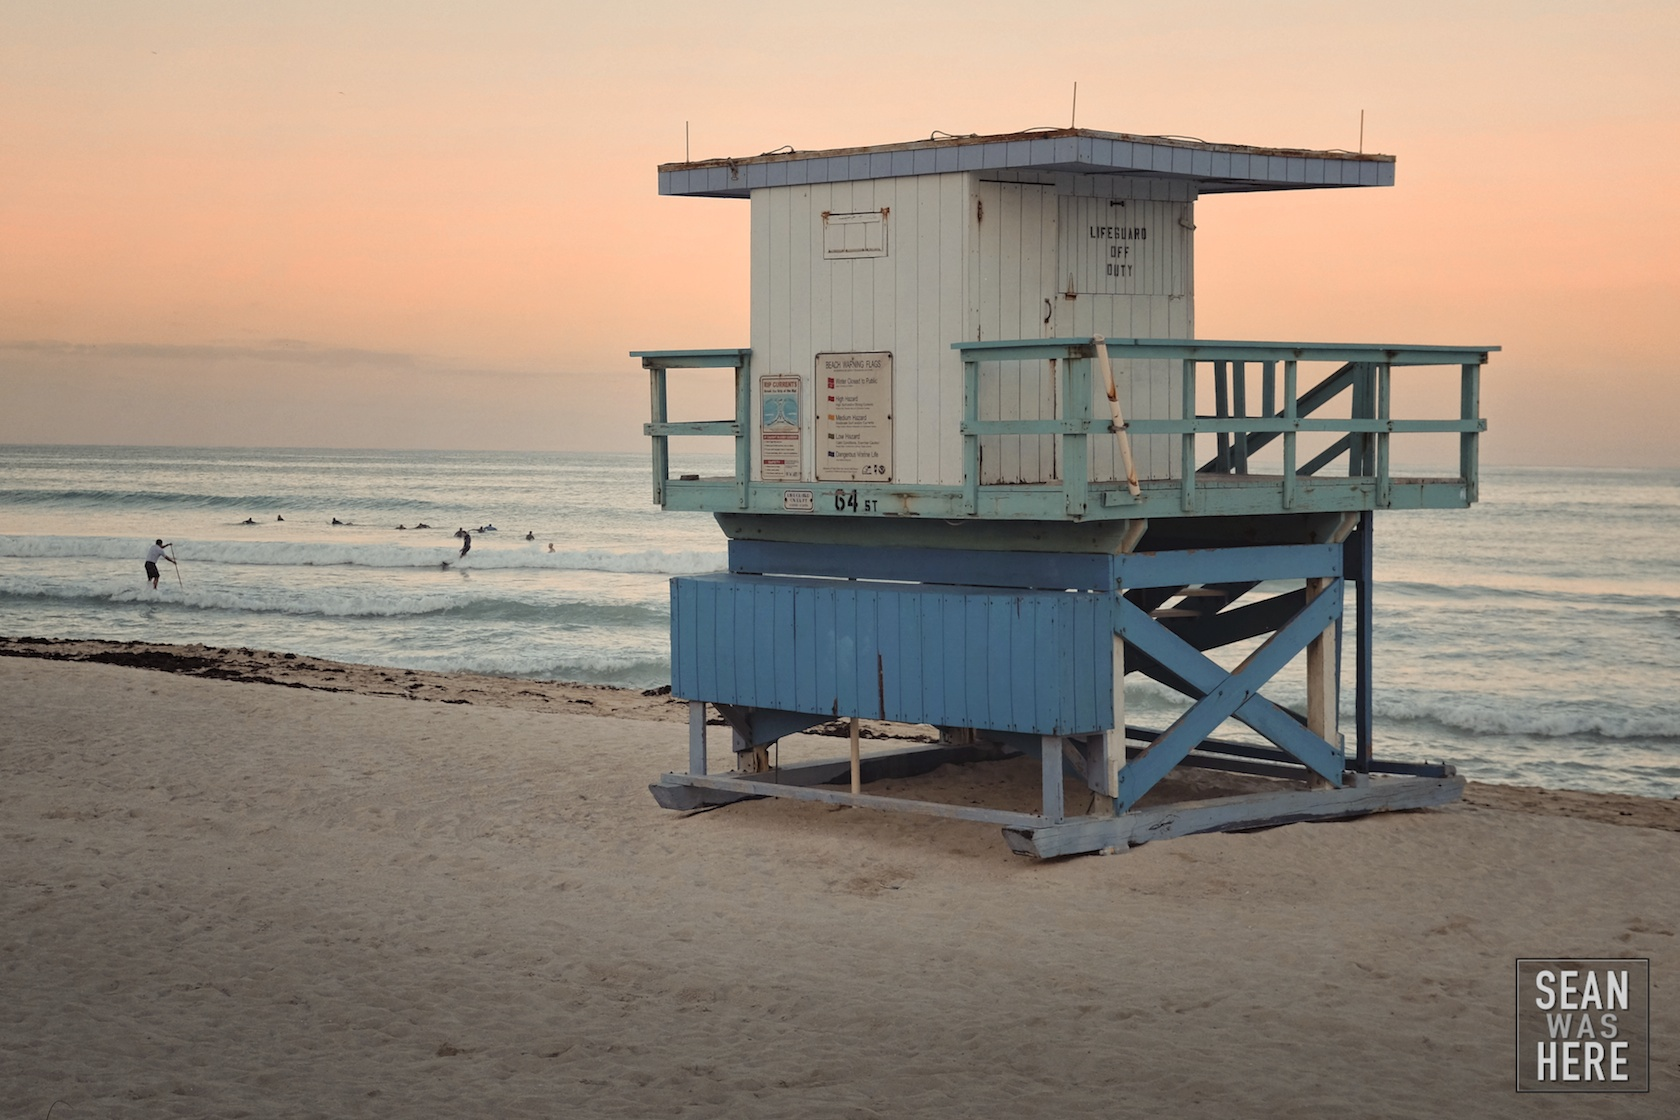 Miami Beach 64th Street Lifeguard Stand